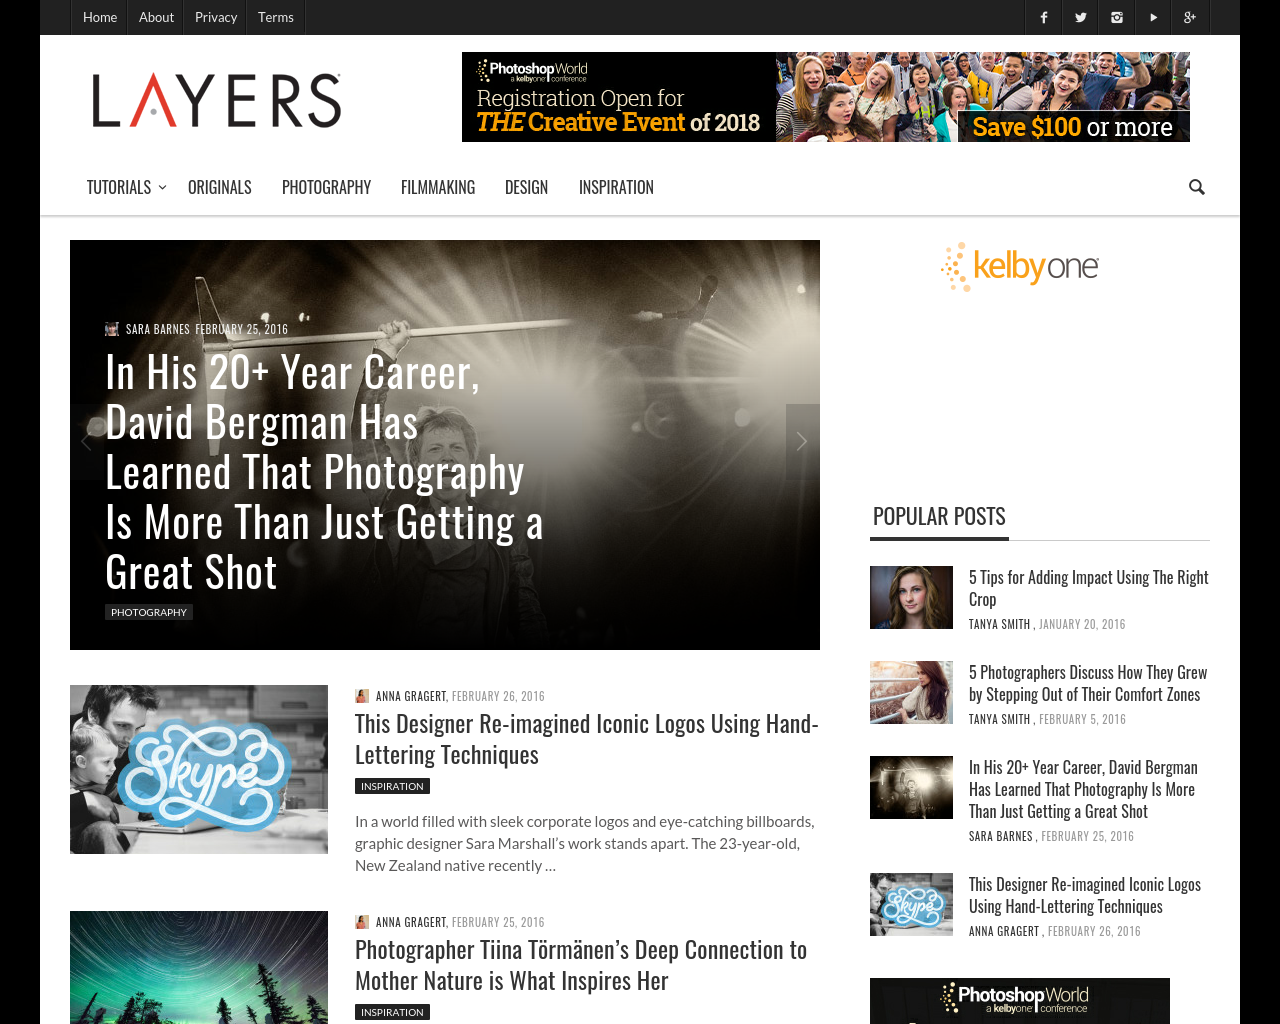 Layers-The-How-to-Magazine-For-Everything-Adobe-Advertising-Reviews-Pricing